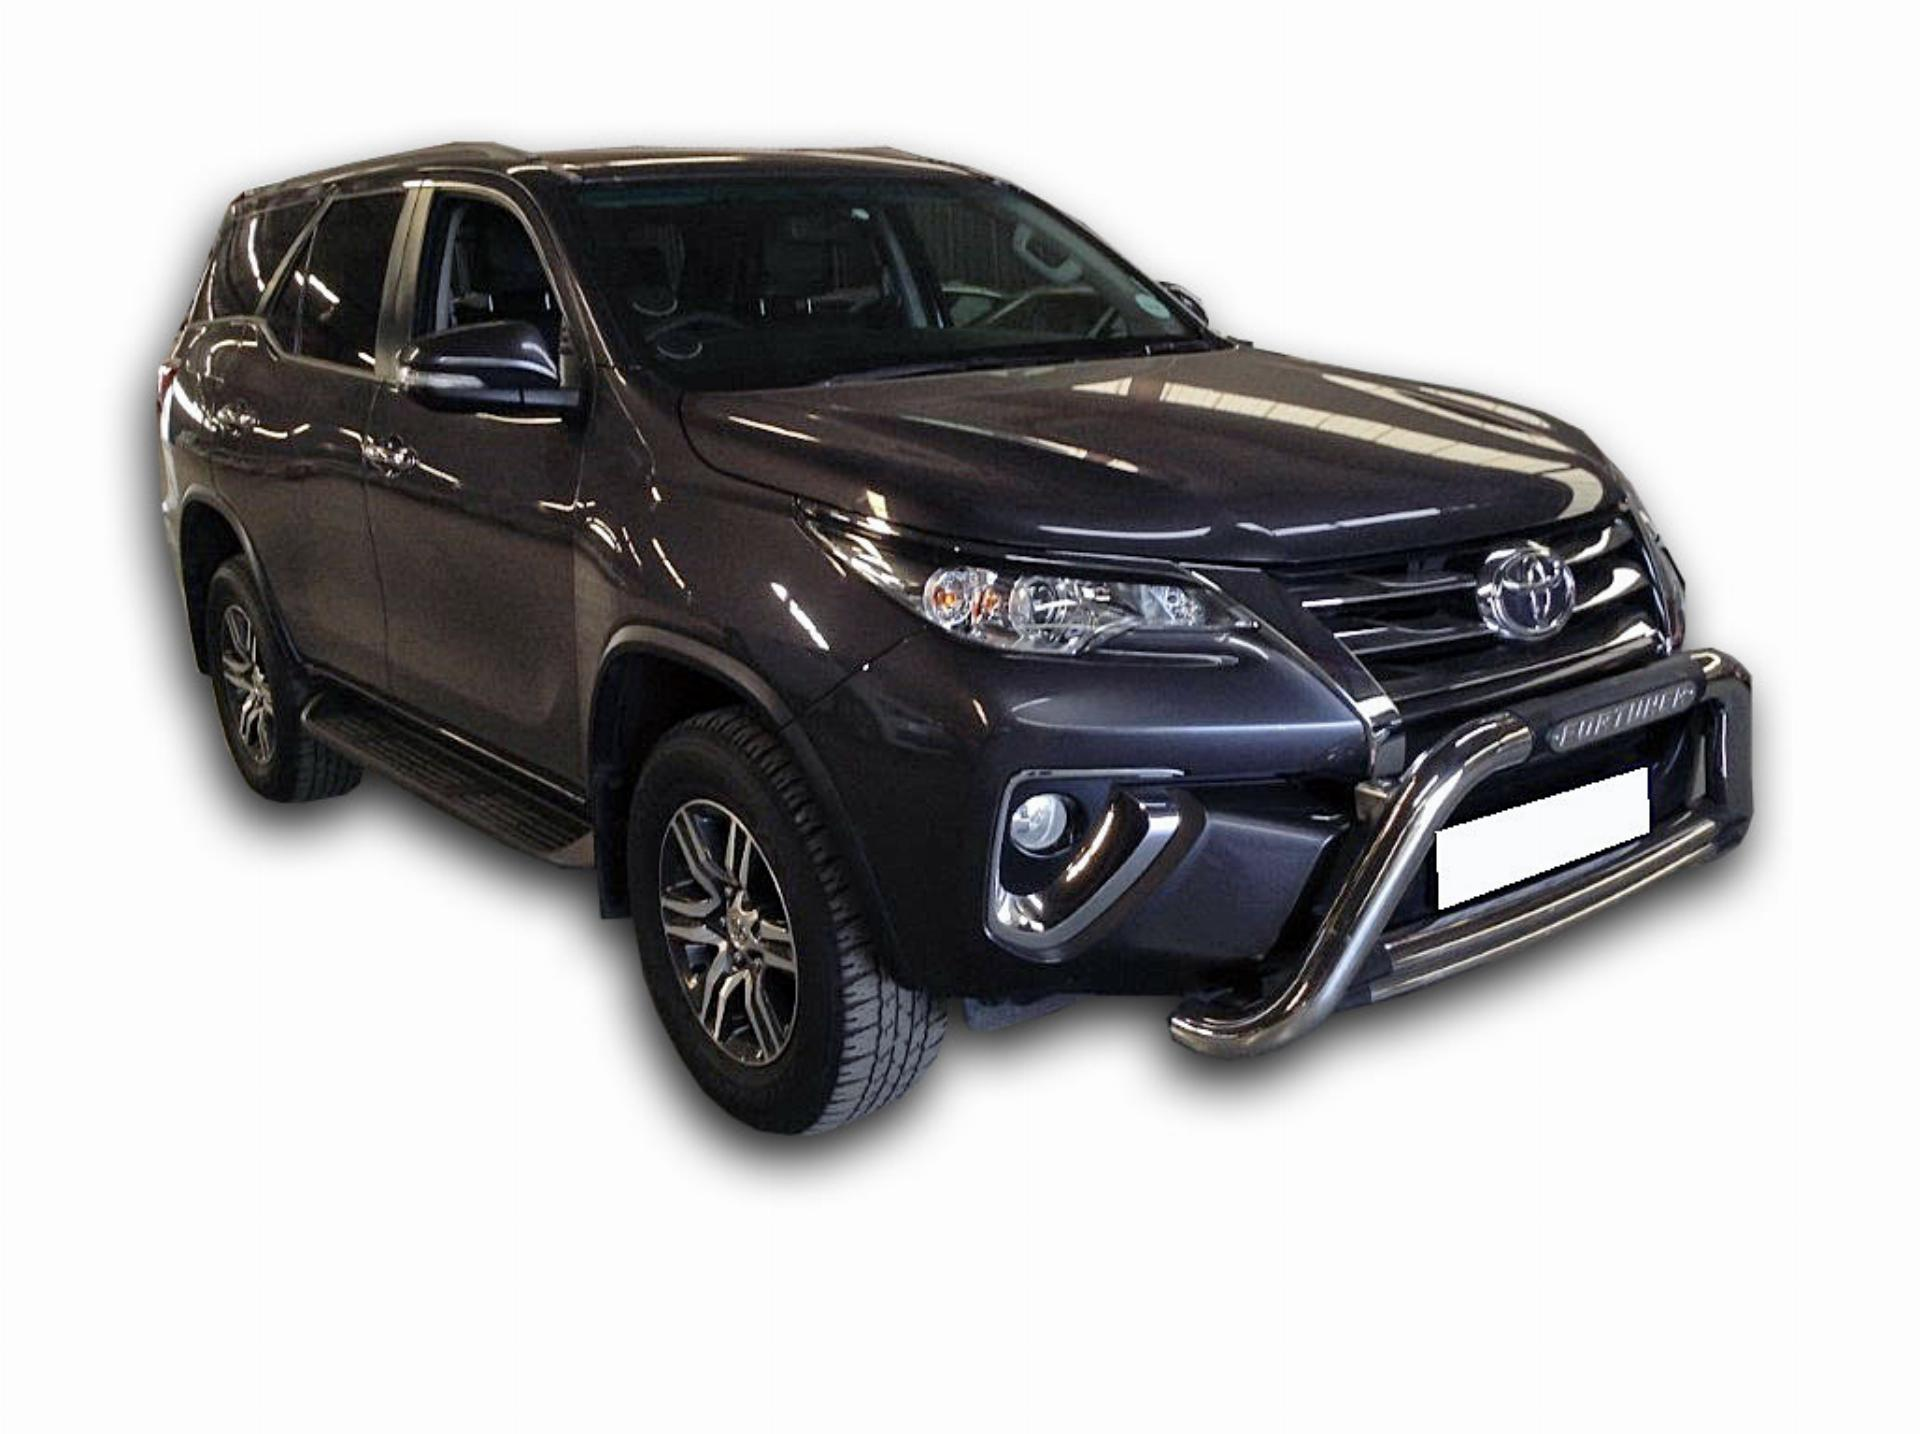 Toyota Fortuner 2.4 GD-6 RB A/T